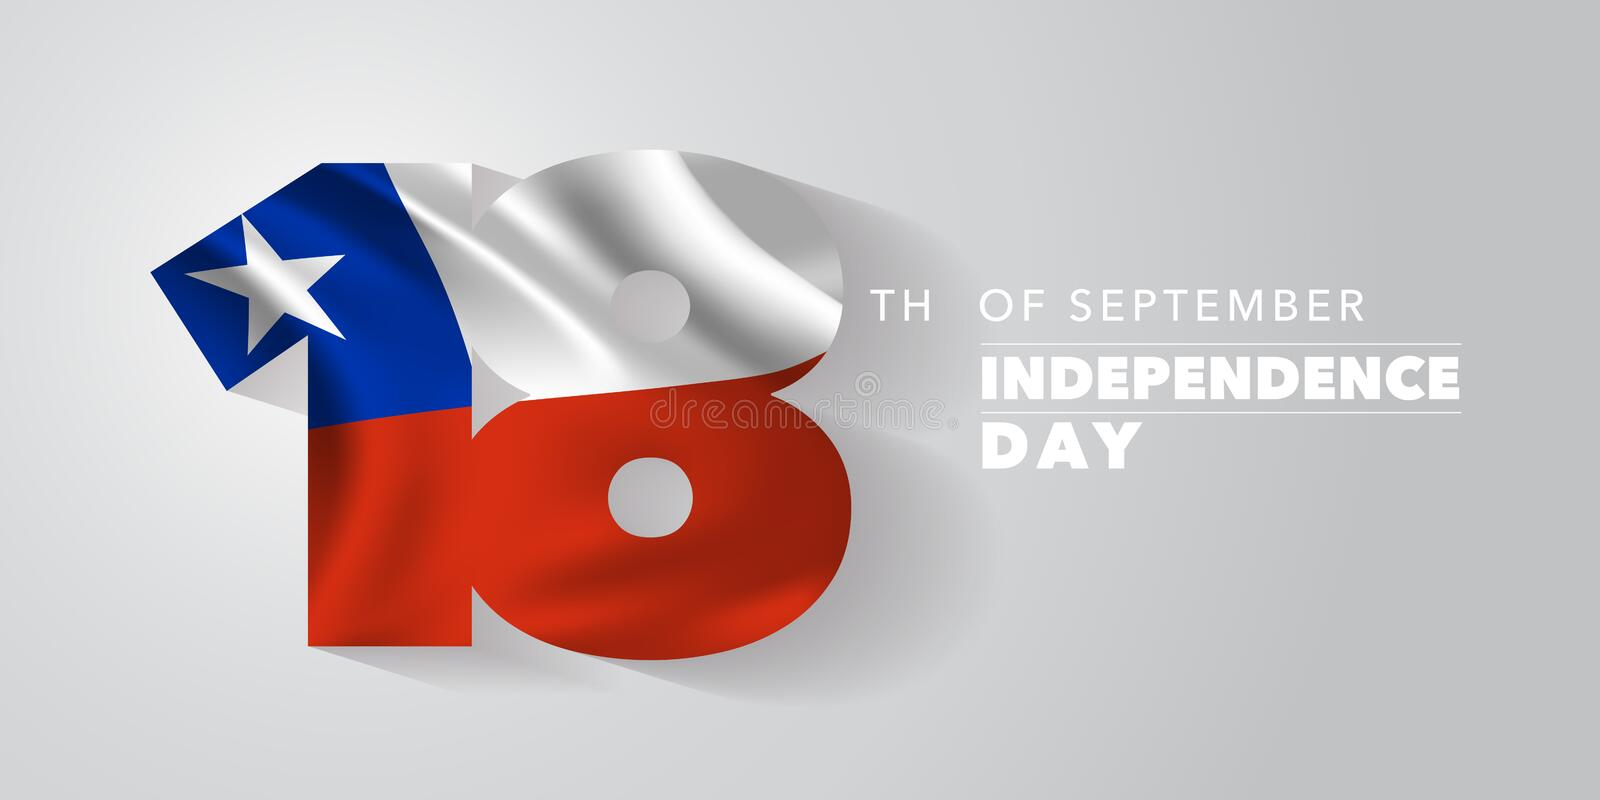 Chile independence day greeting card, banner, vector illustration stock photo